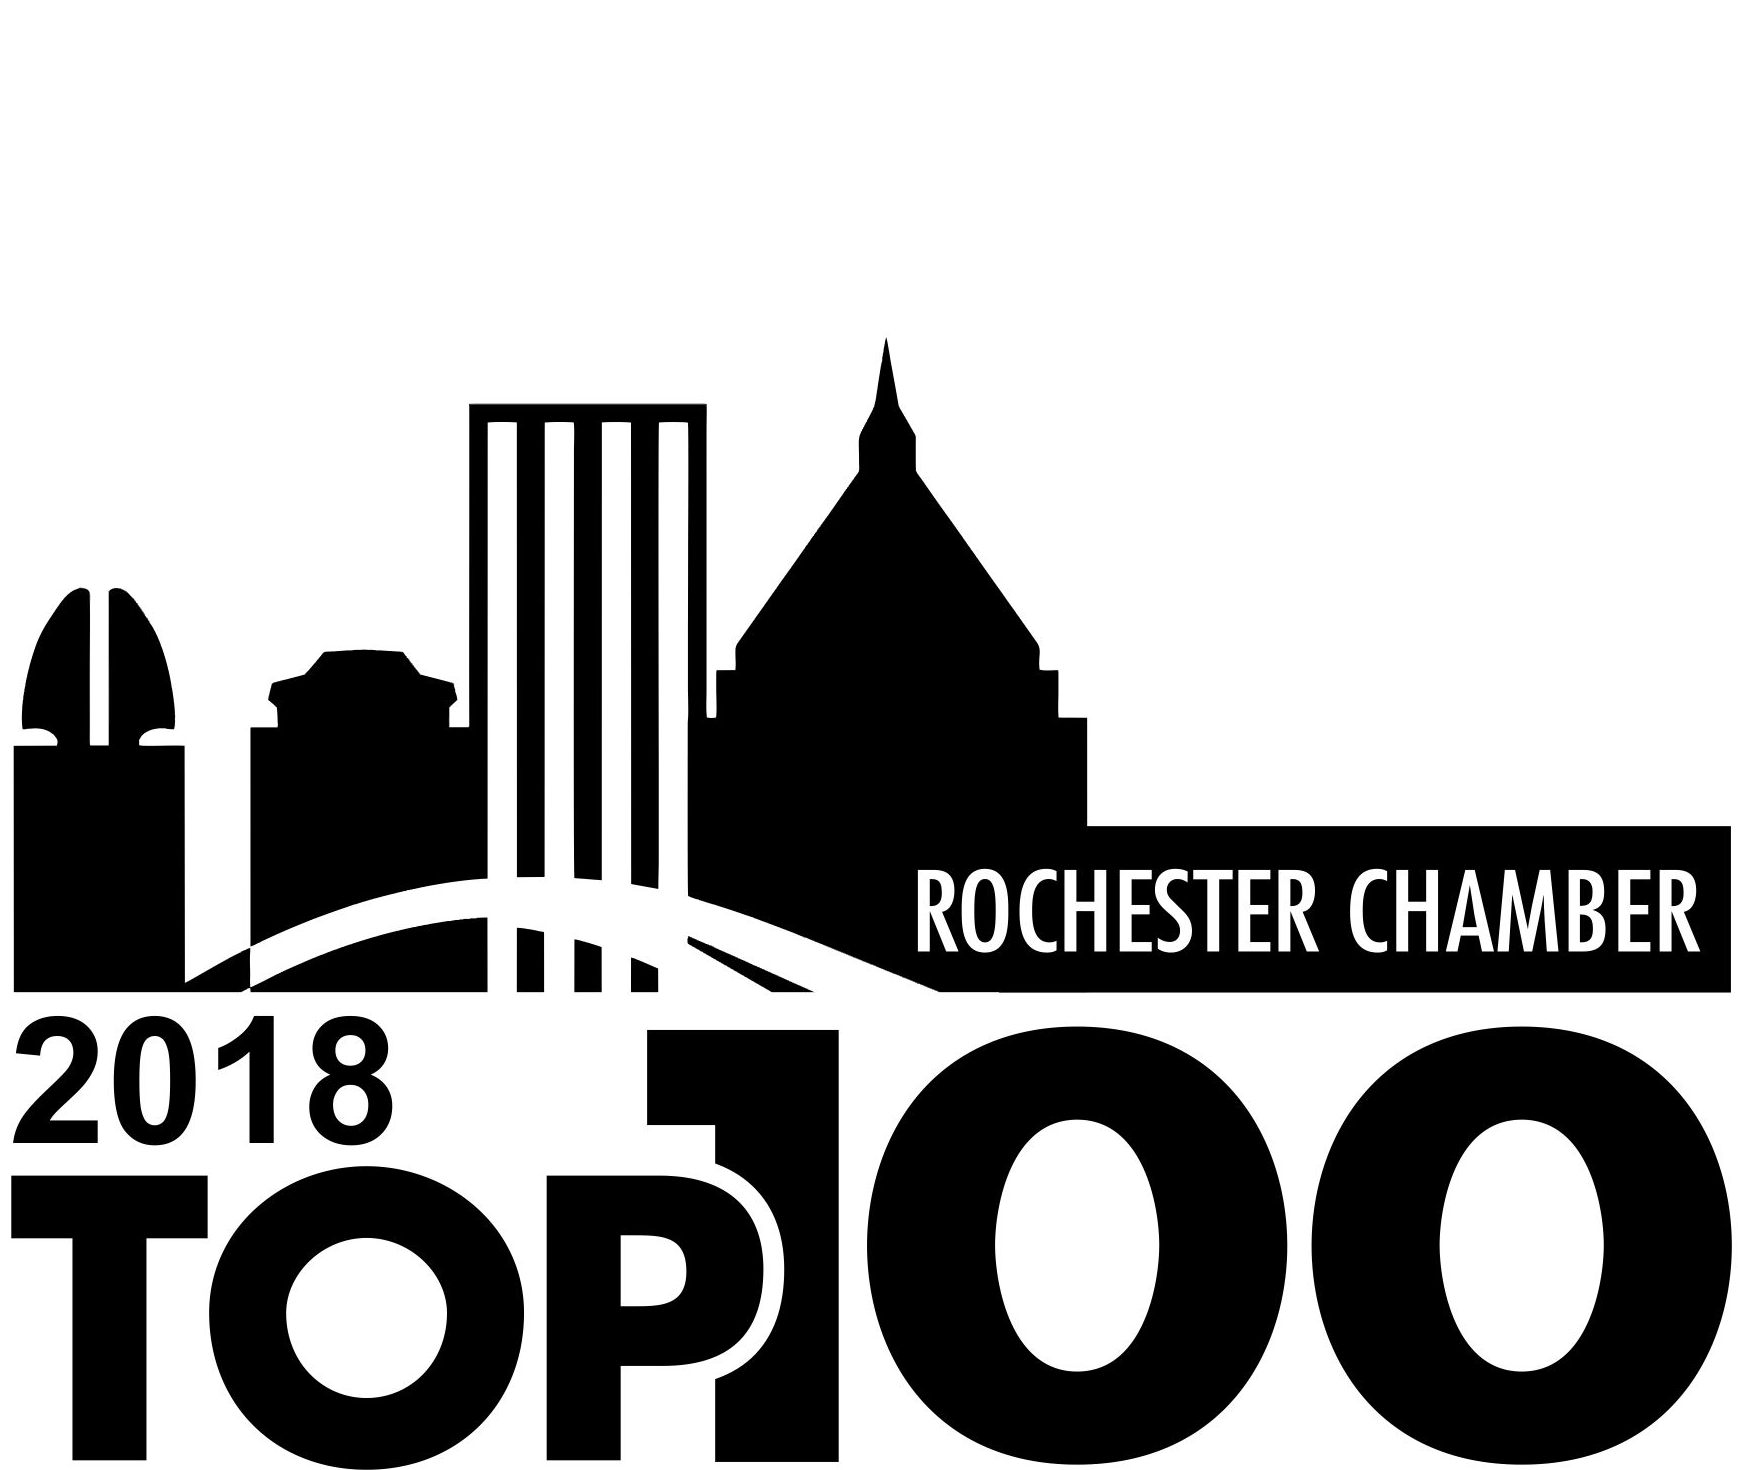 Poseidon Systems Makes the Rochester Top100